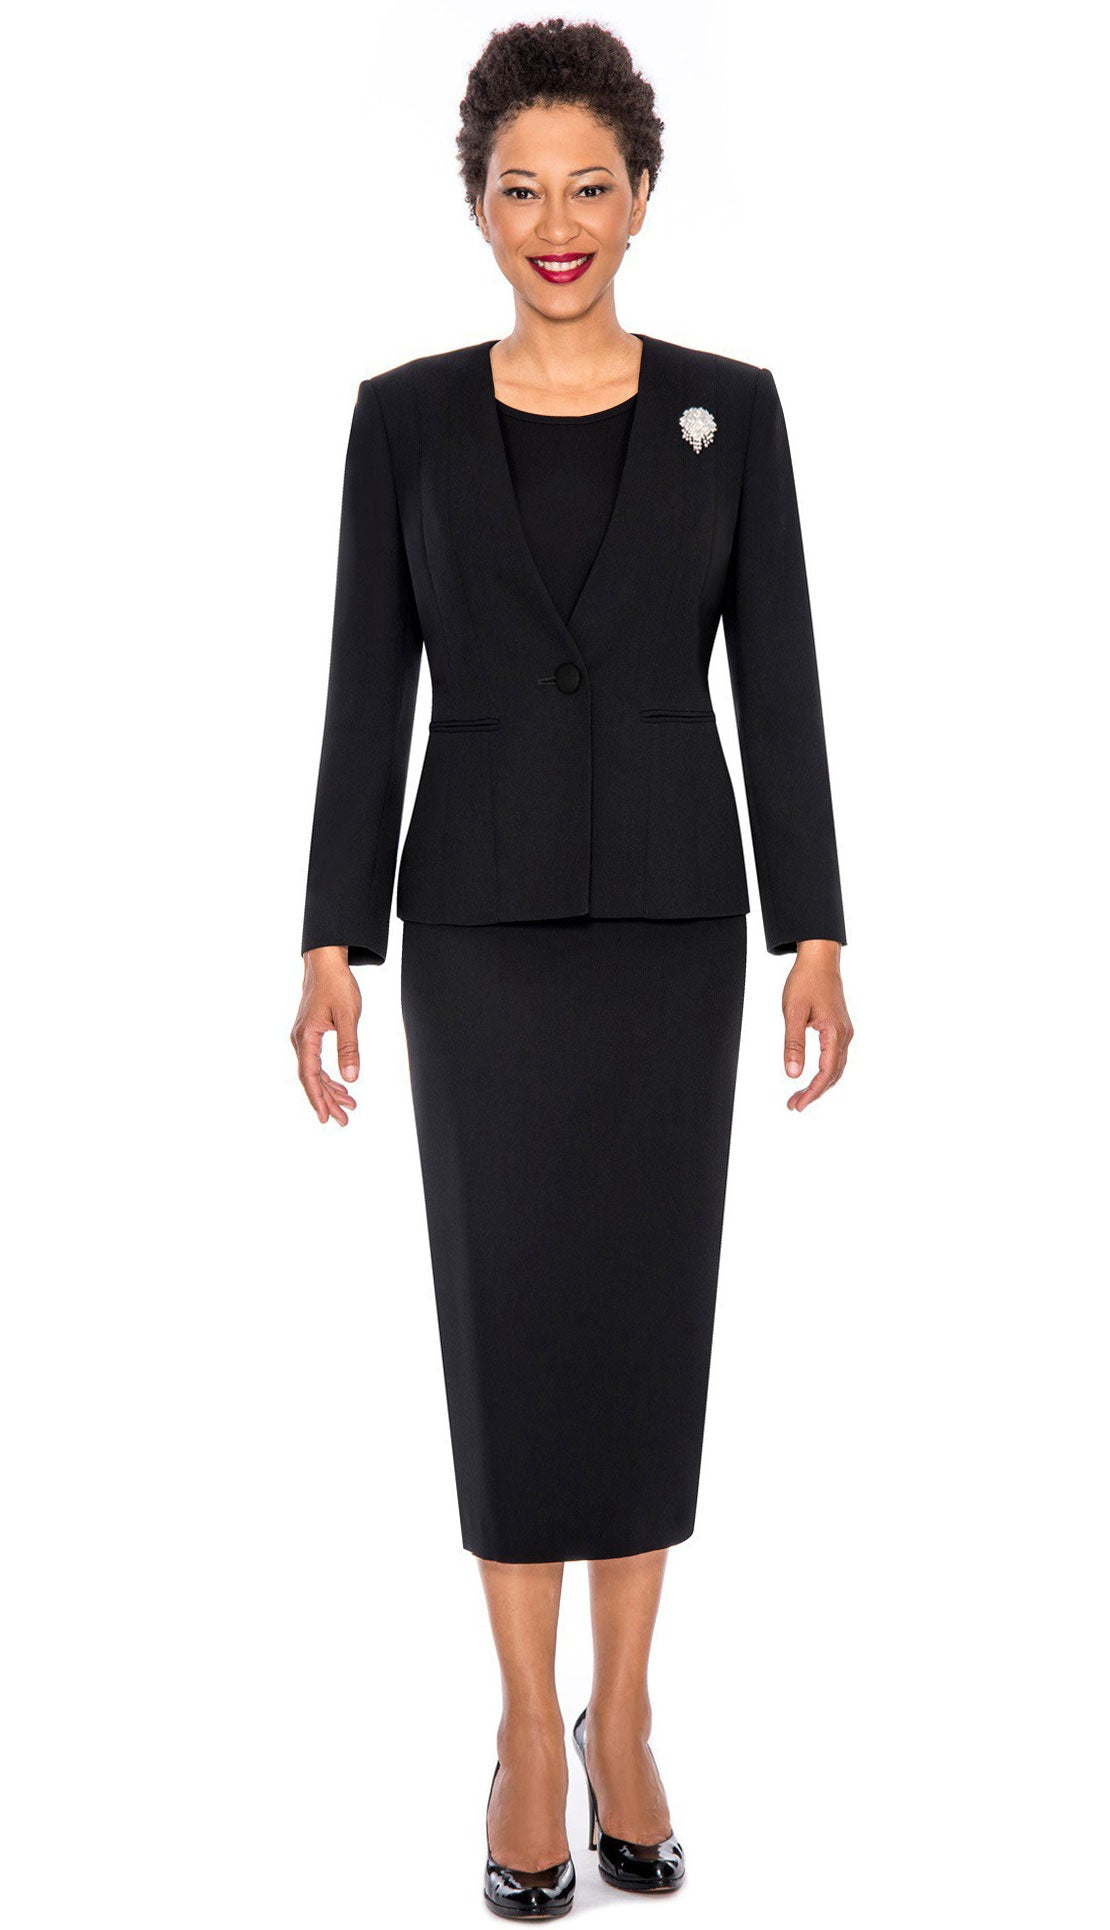 Giovanna Usher Suit 0825-Black - Church Suits For Less